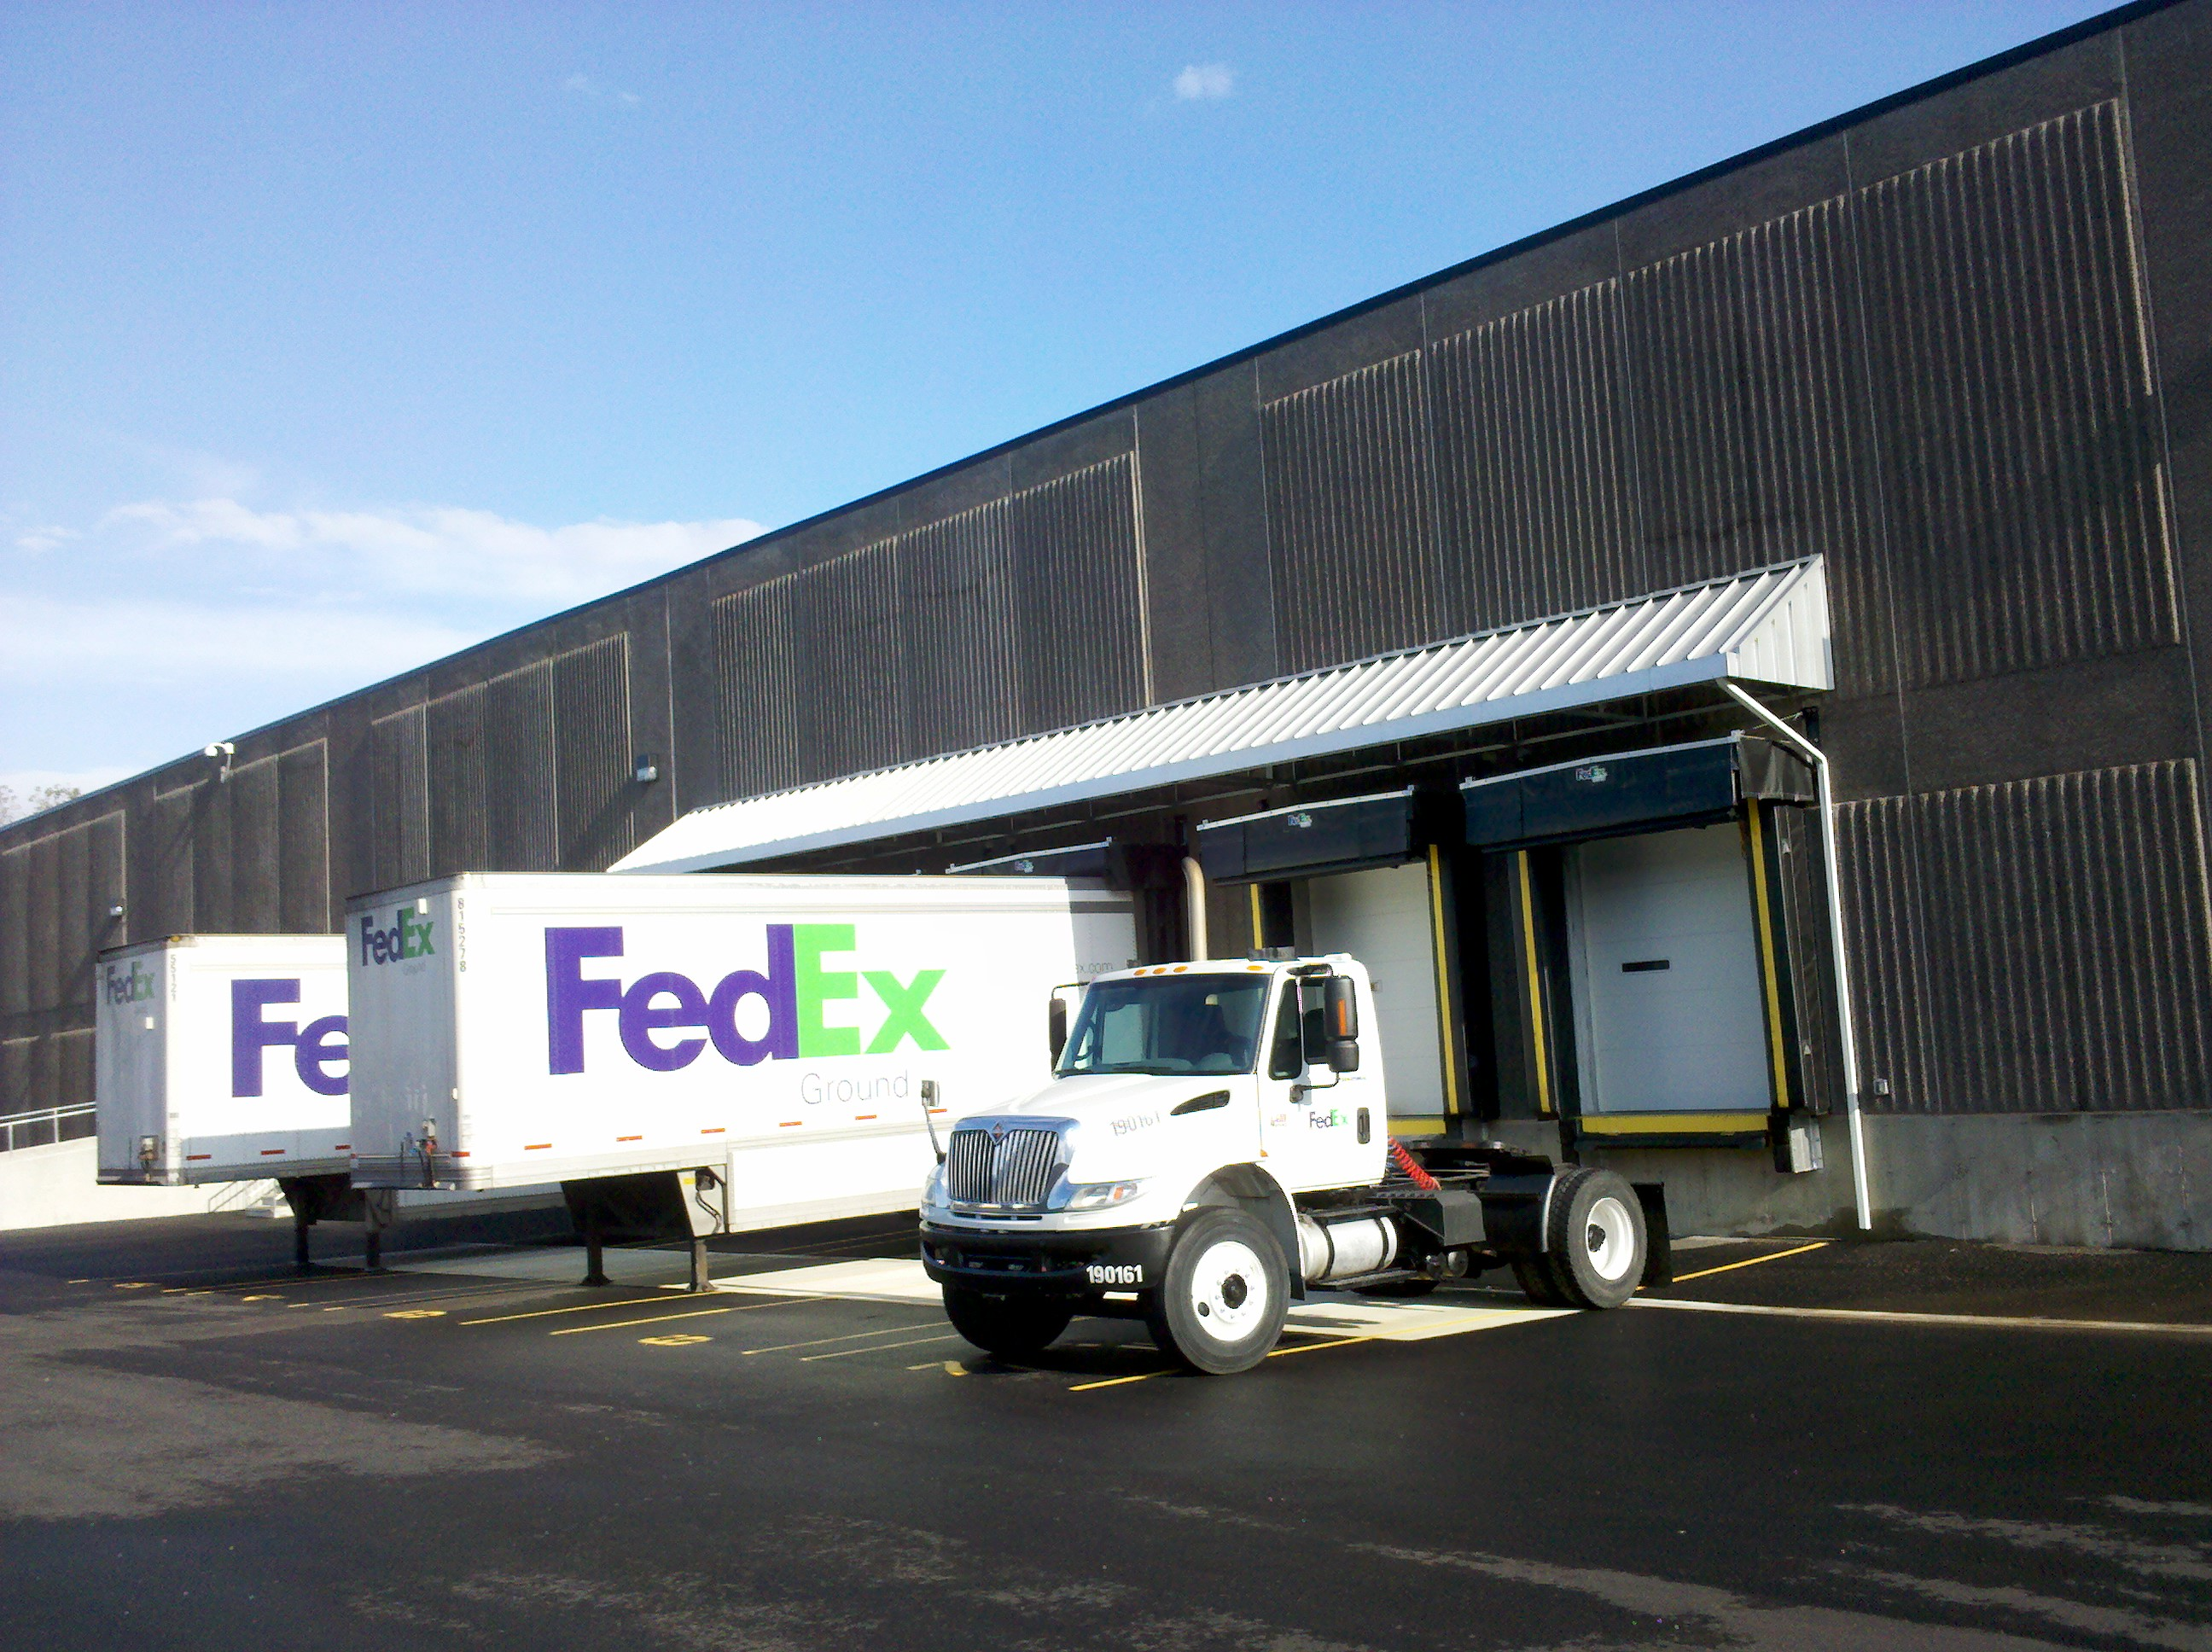 Truckport Aluminum Canopy For Fedex In North Haven Ct